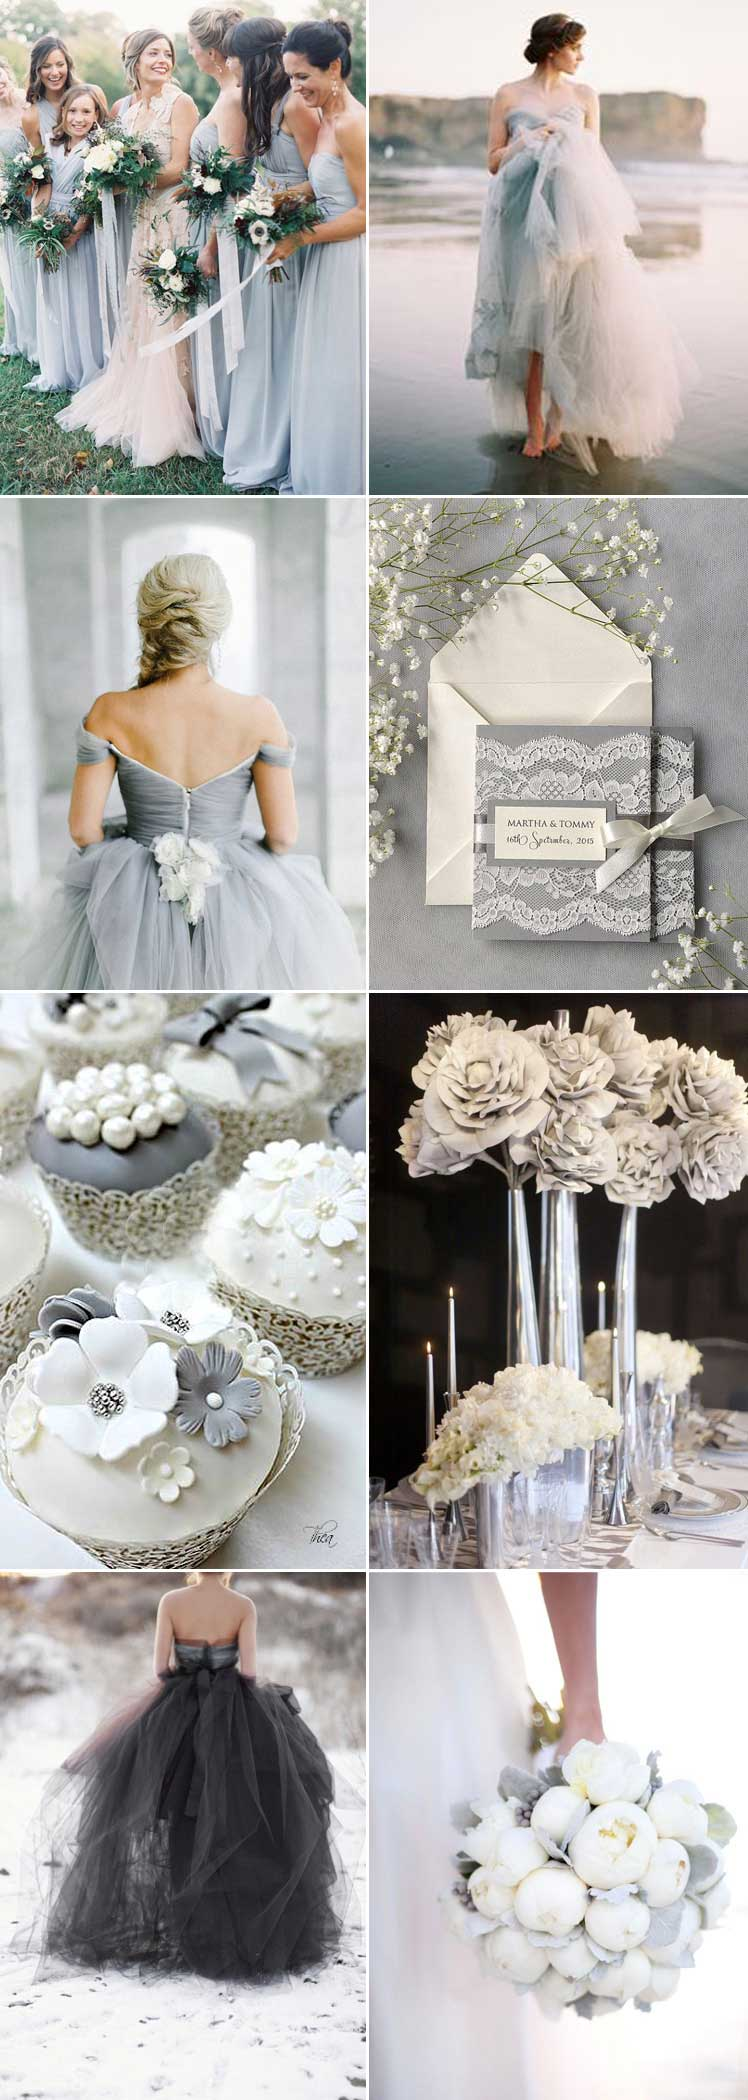 Fifty Shades of Grey for your wedding day colour scheme